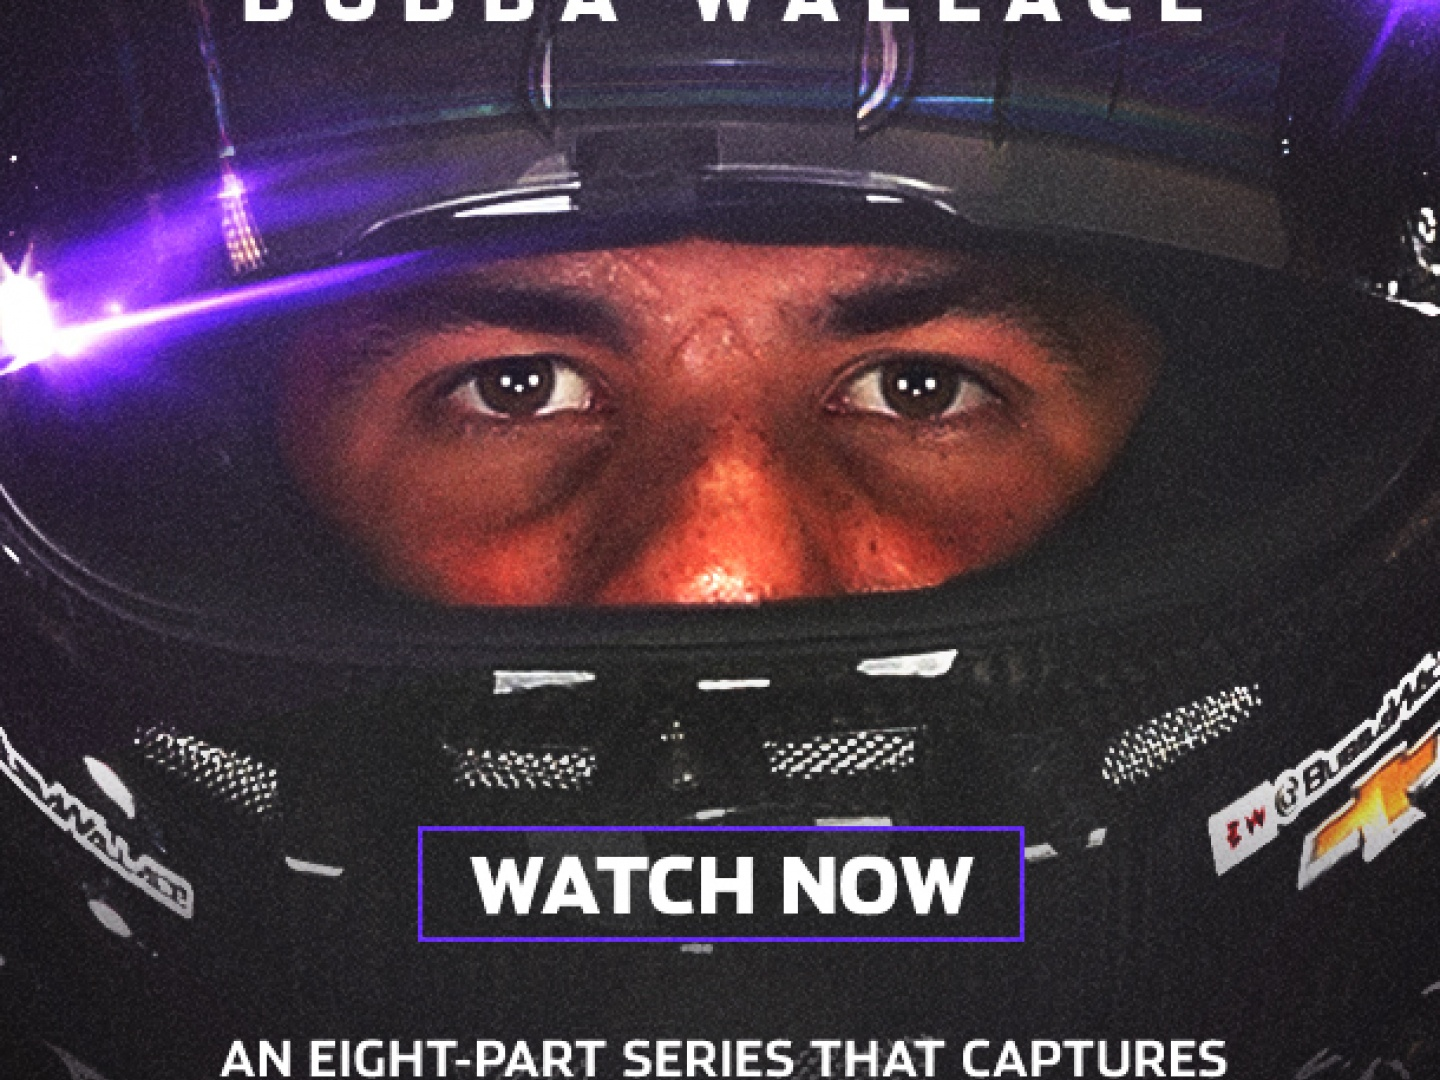 Behind The Wall: Bubba Wallace Thumbnail